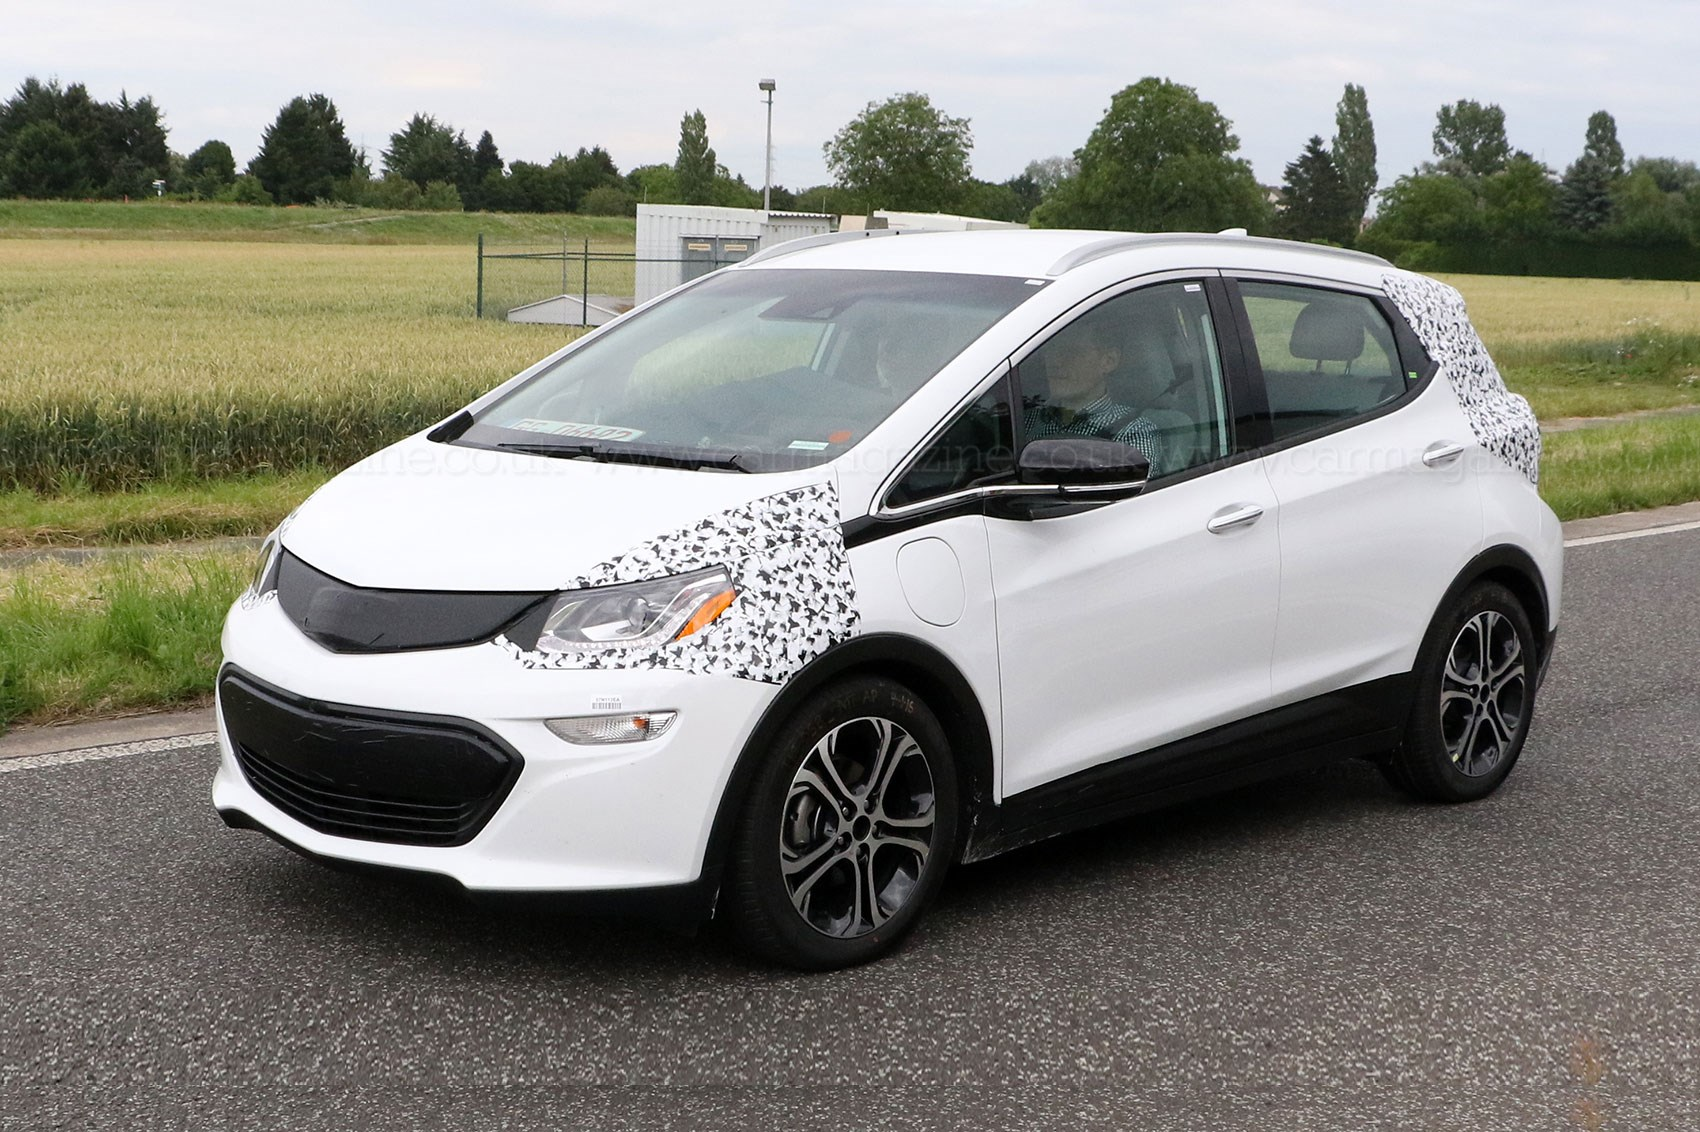 Toyota New Car 2017 >> Opel Ampera-e plugs away at testing before 2017 launch by CAR Magazine